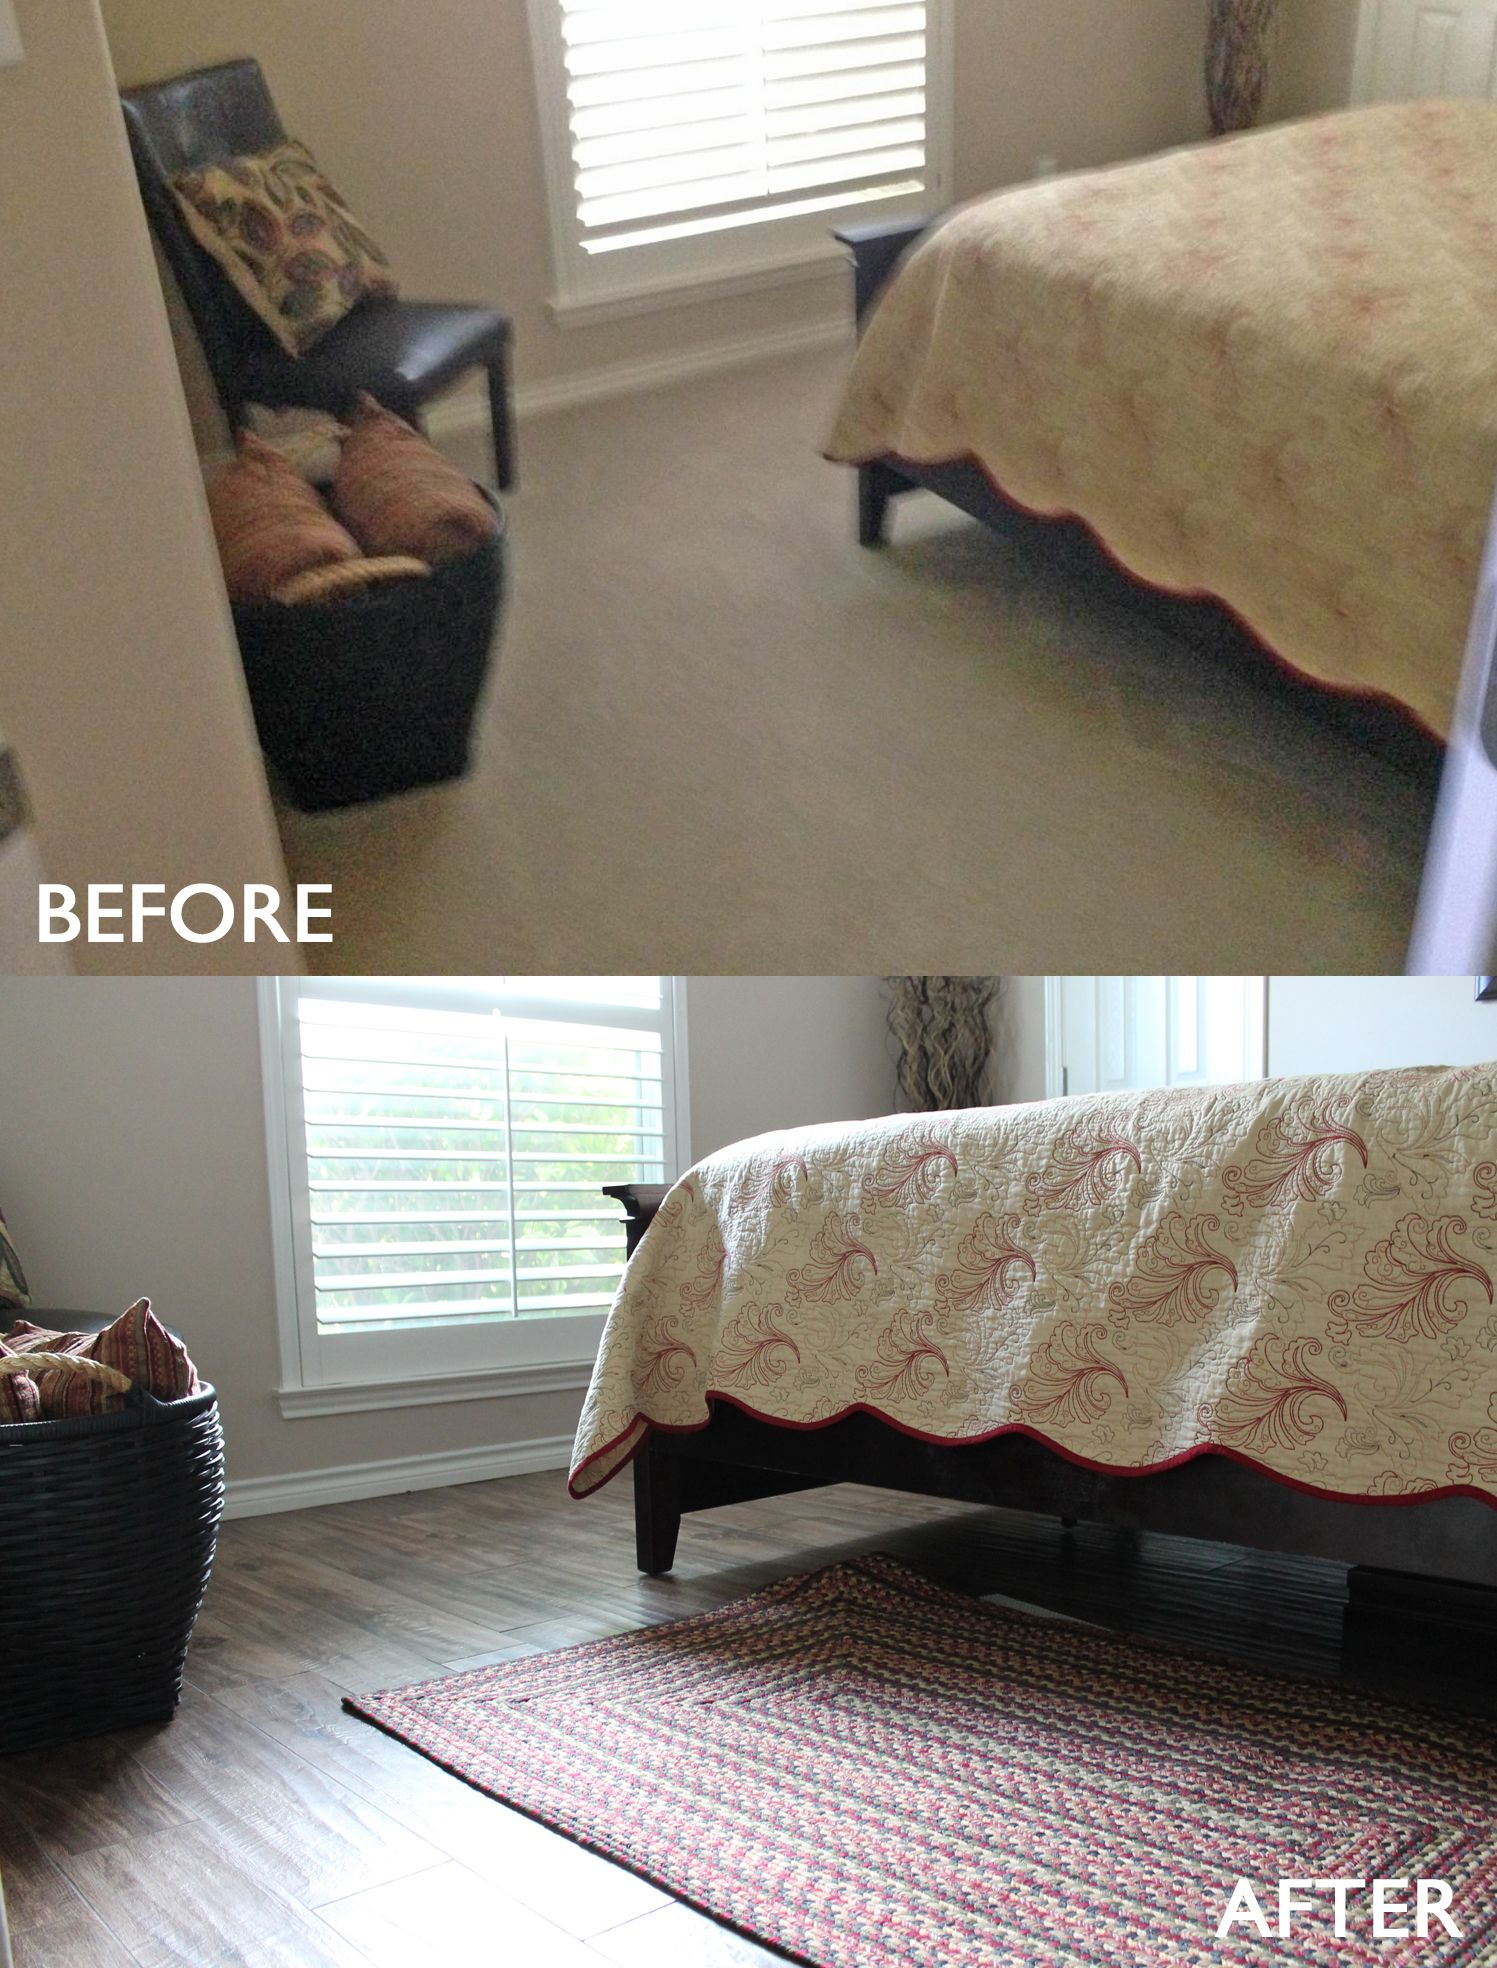 Bedroom Remodel Before And After Carpet To Wood Look Tile Floor